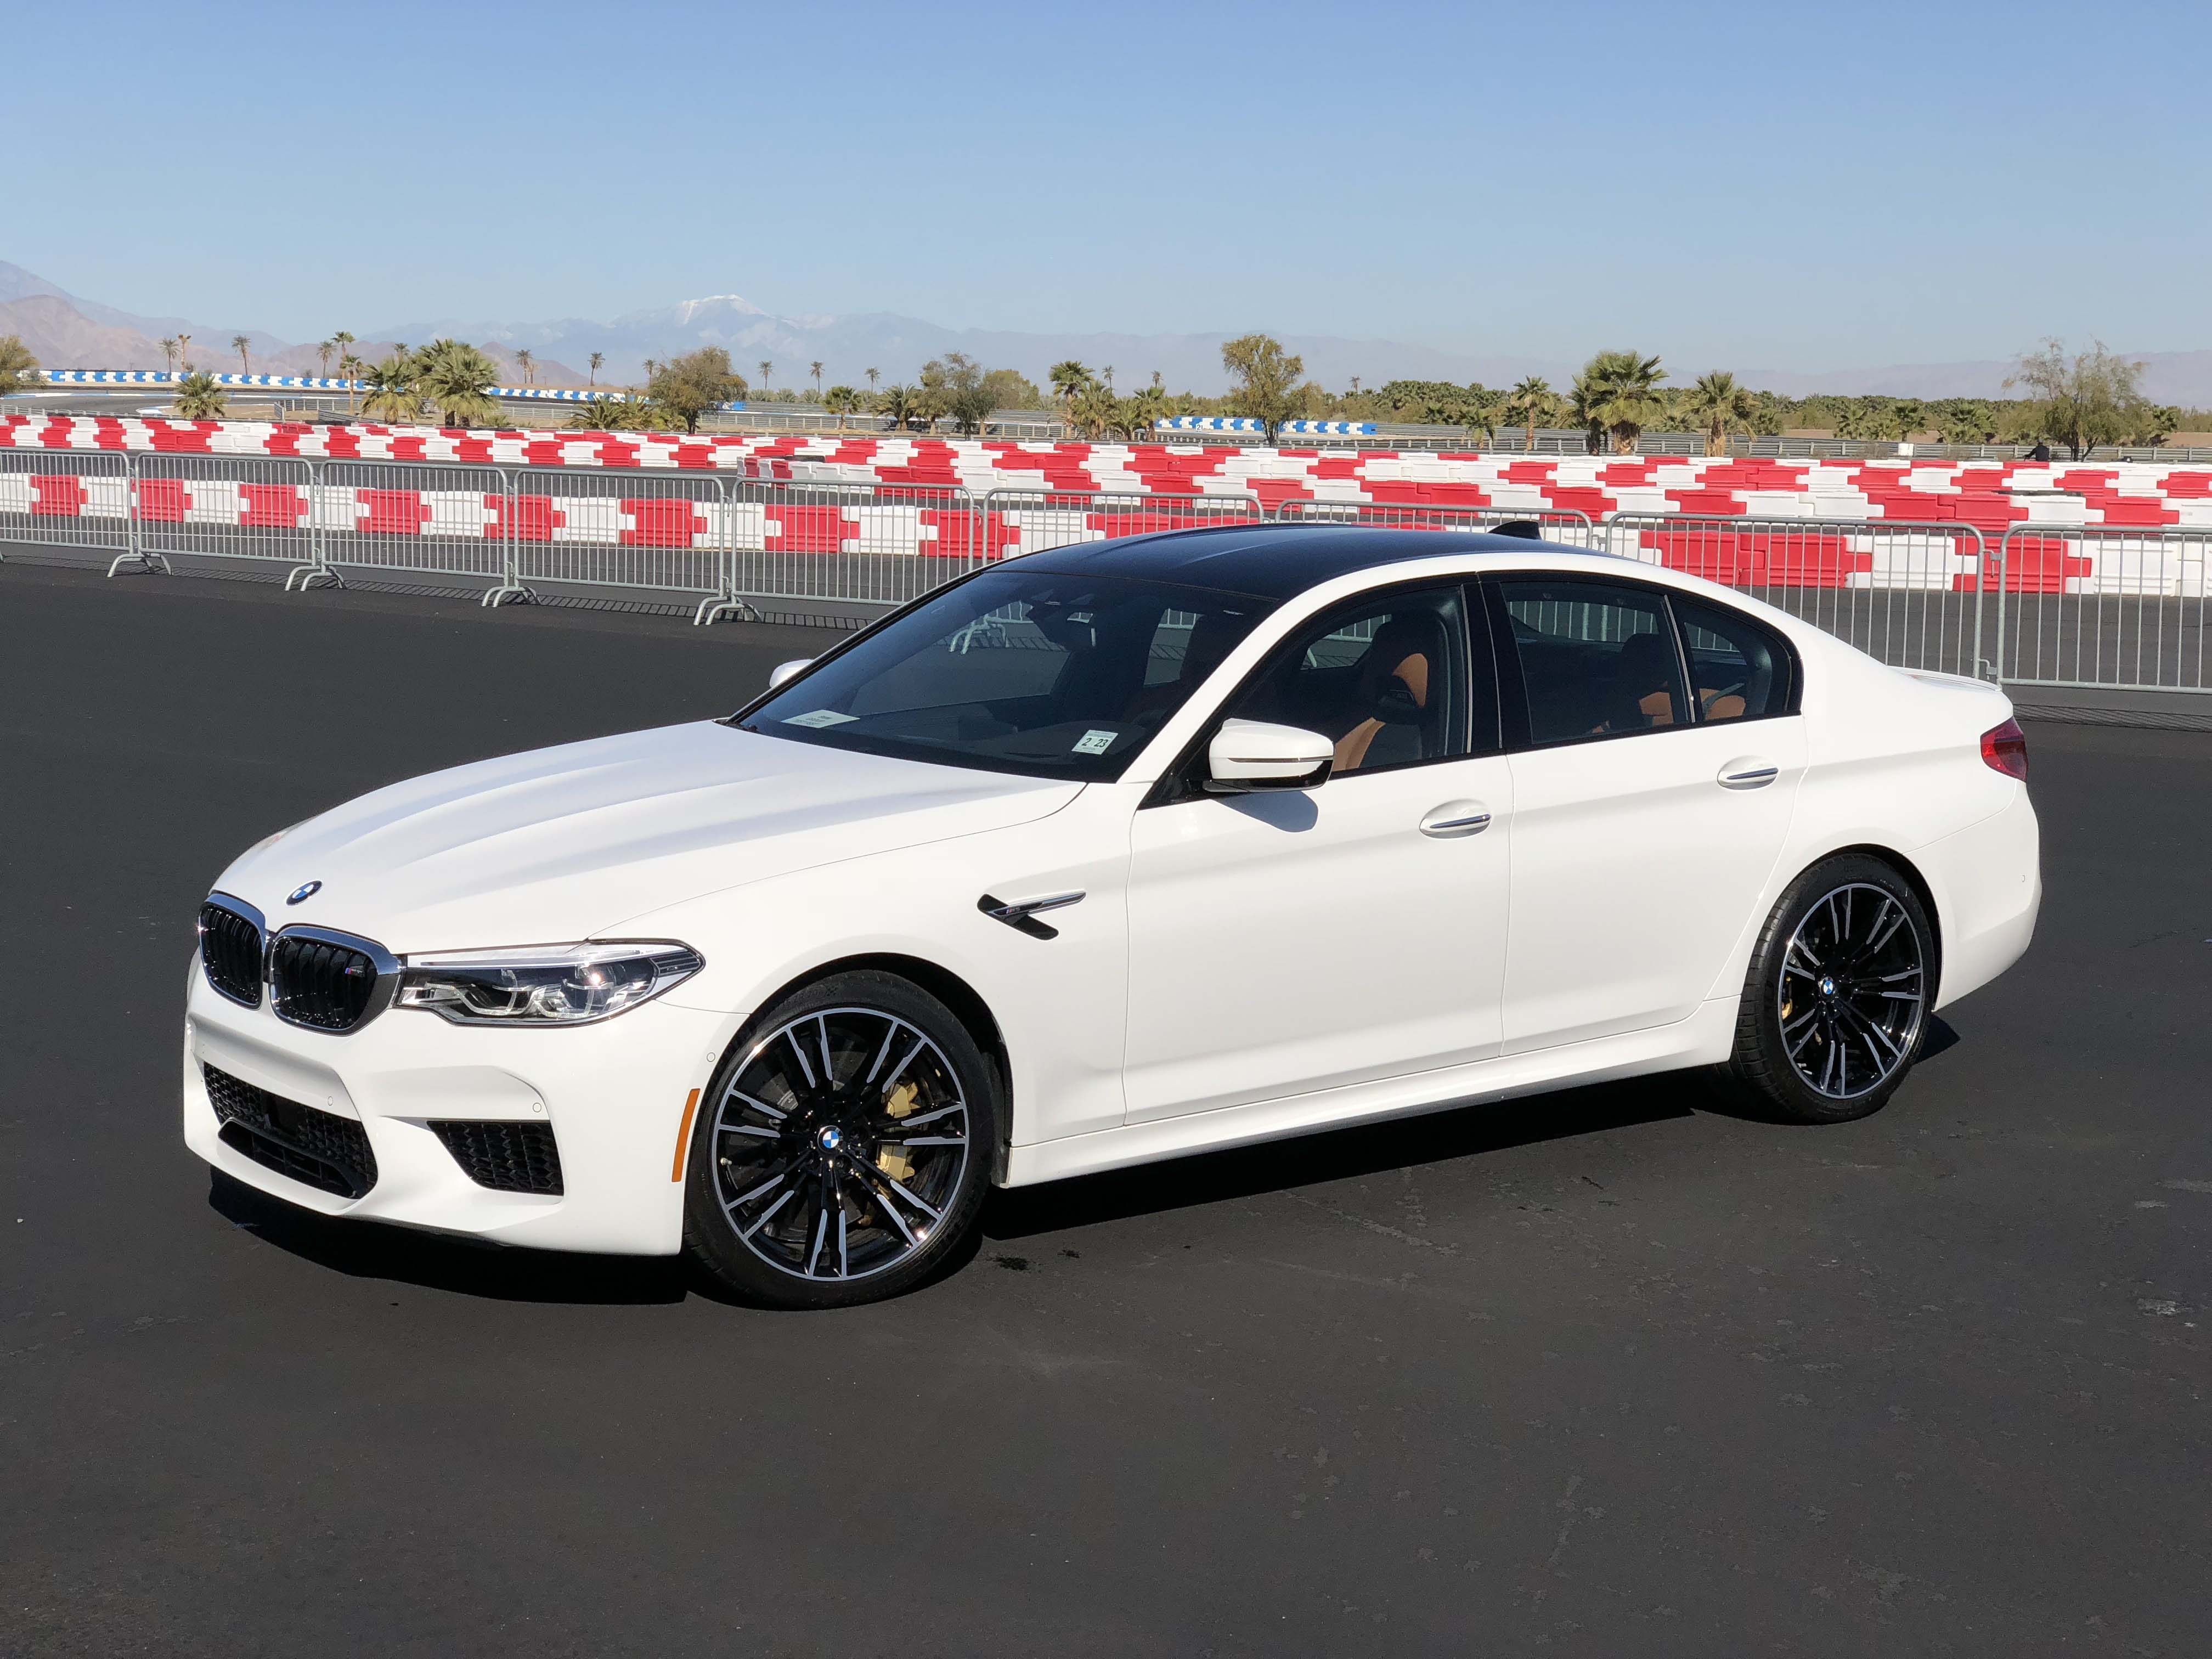 2018 BMW M5 Sedan: The Bavarian Cyborg